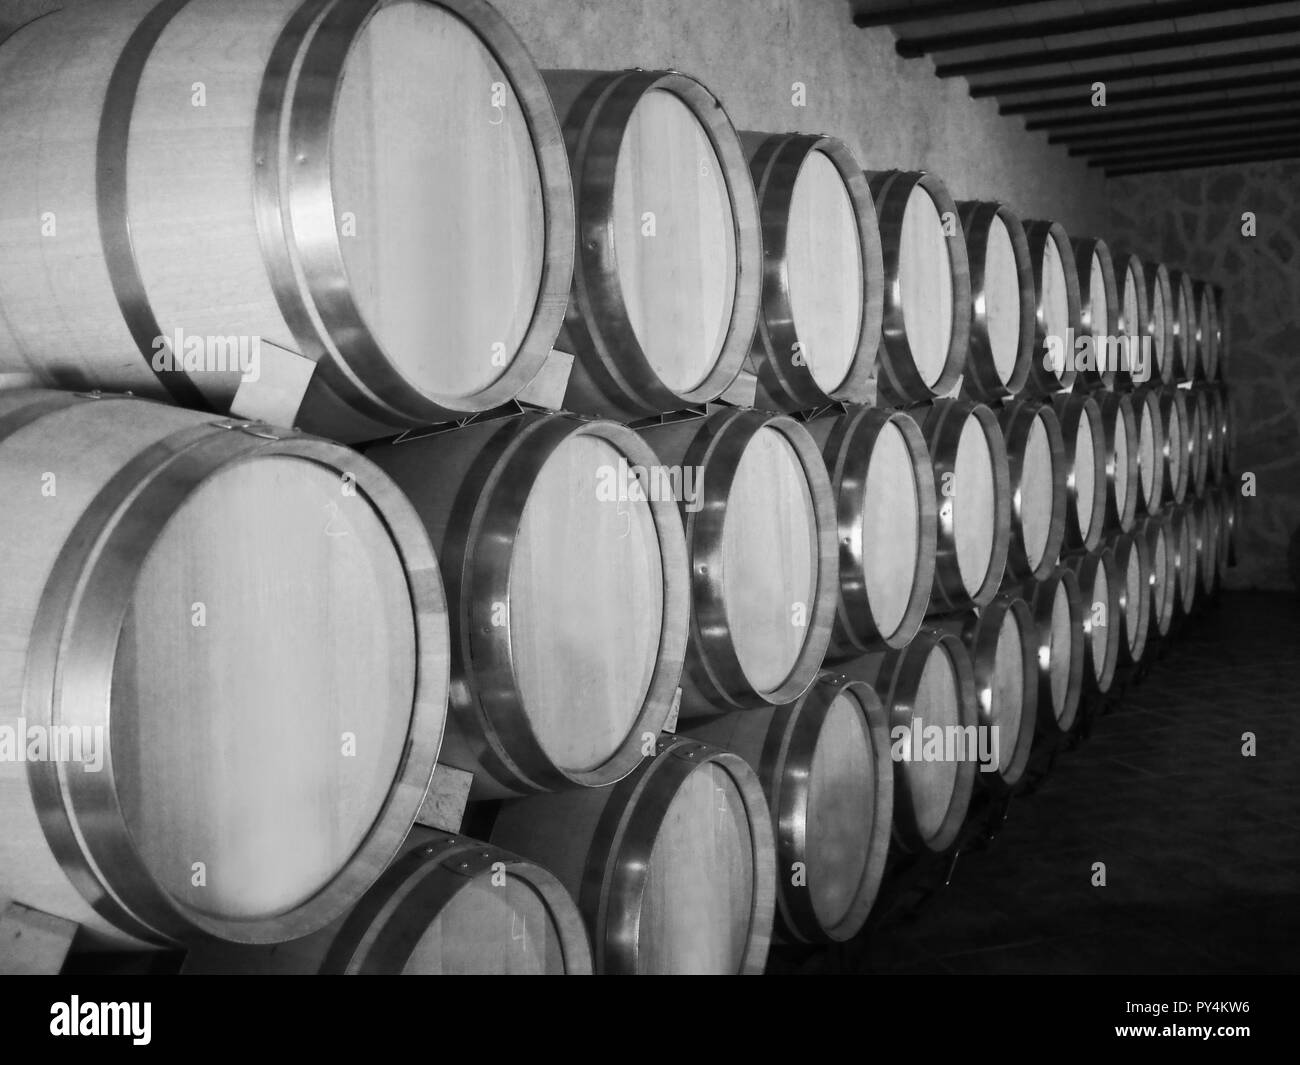 Old wine barrels in a wine cellar.  Stacked up wine bottles in the cellar, dusty but tasty. - Stock Image